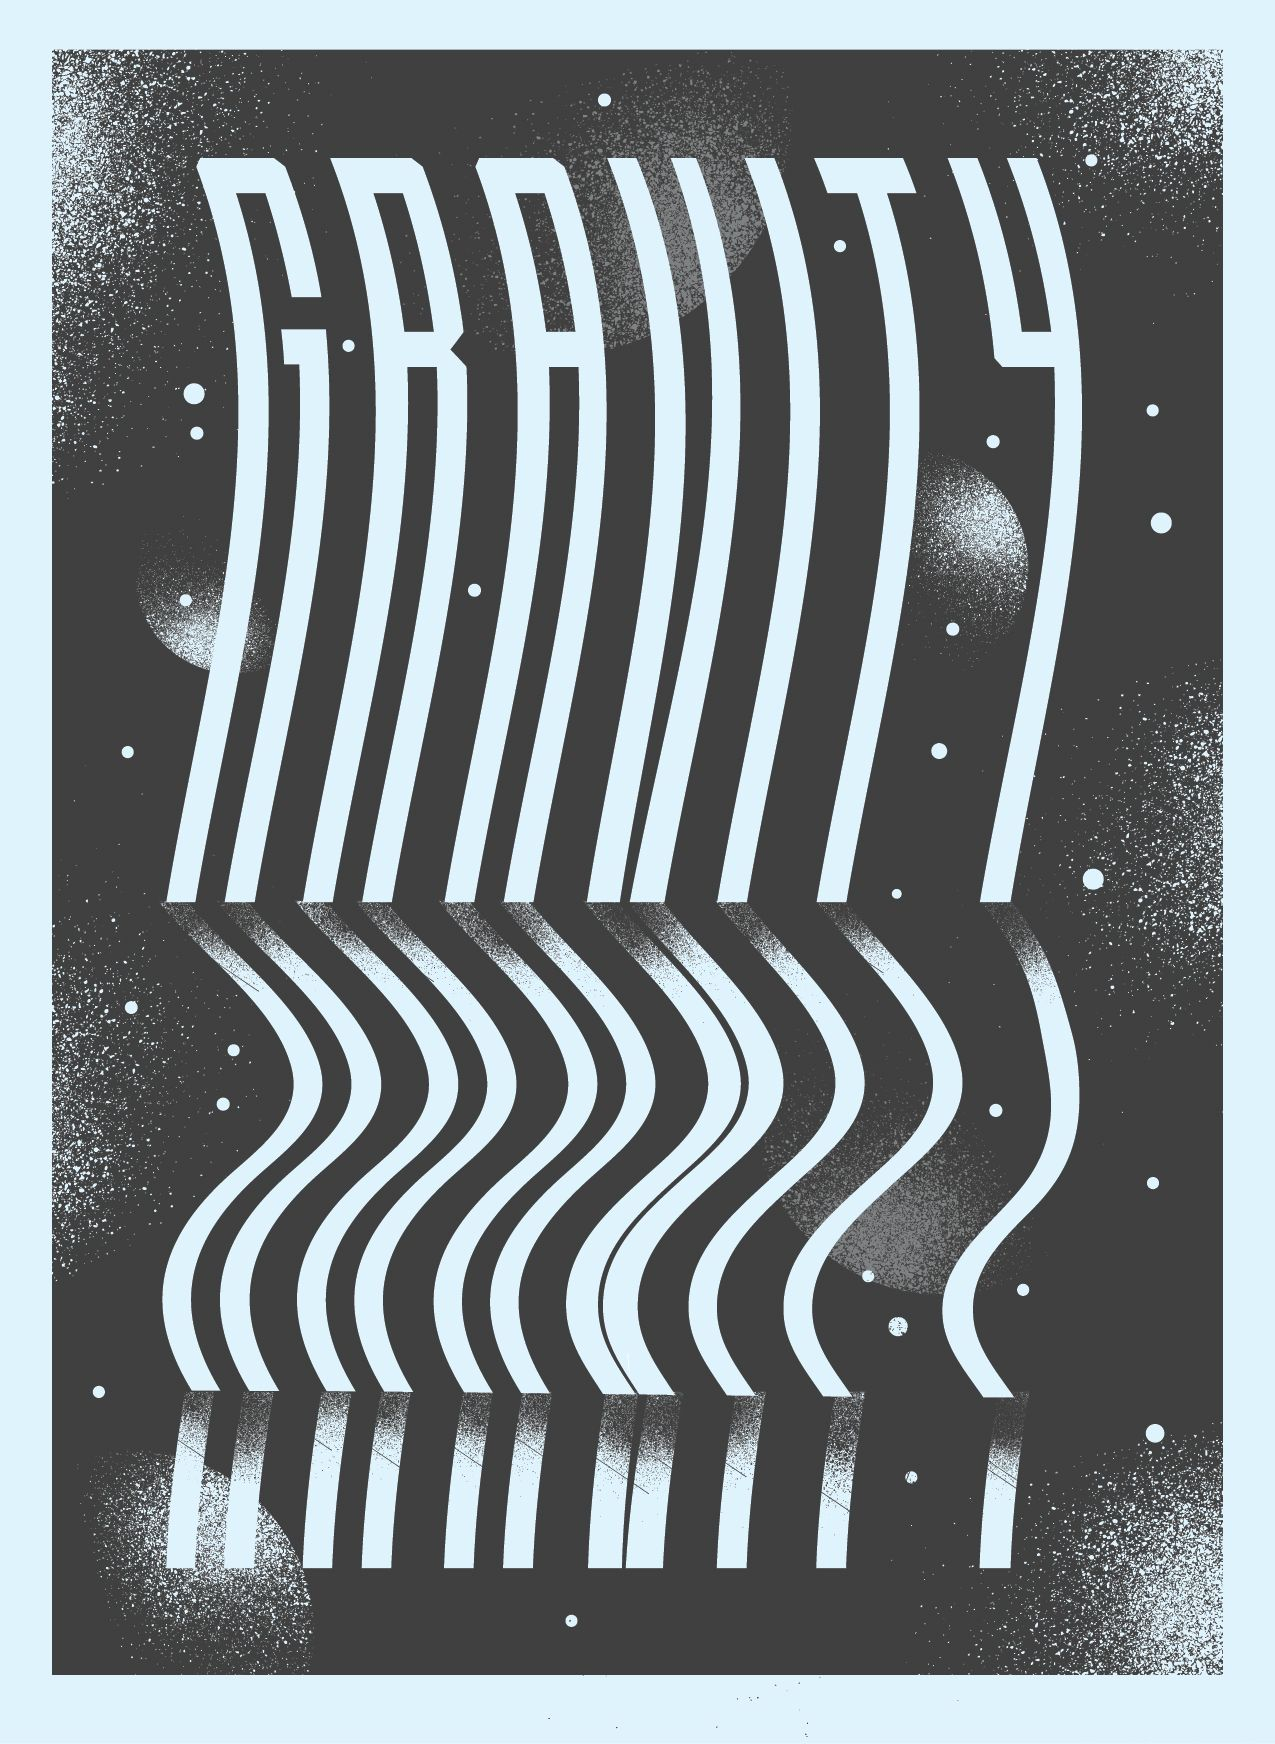 space inspired type Google Search Gravity, Types of